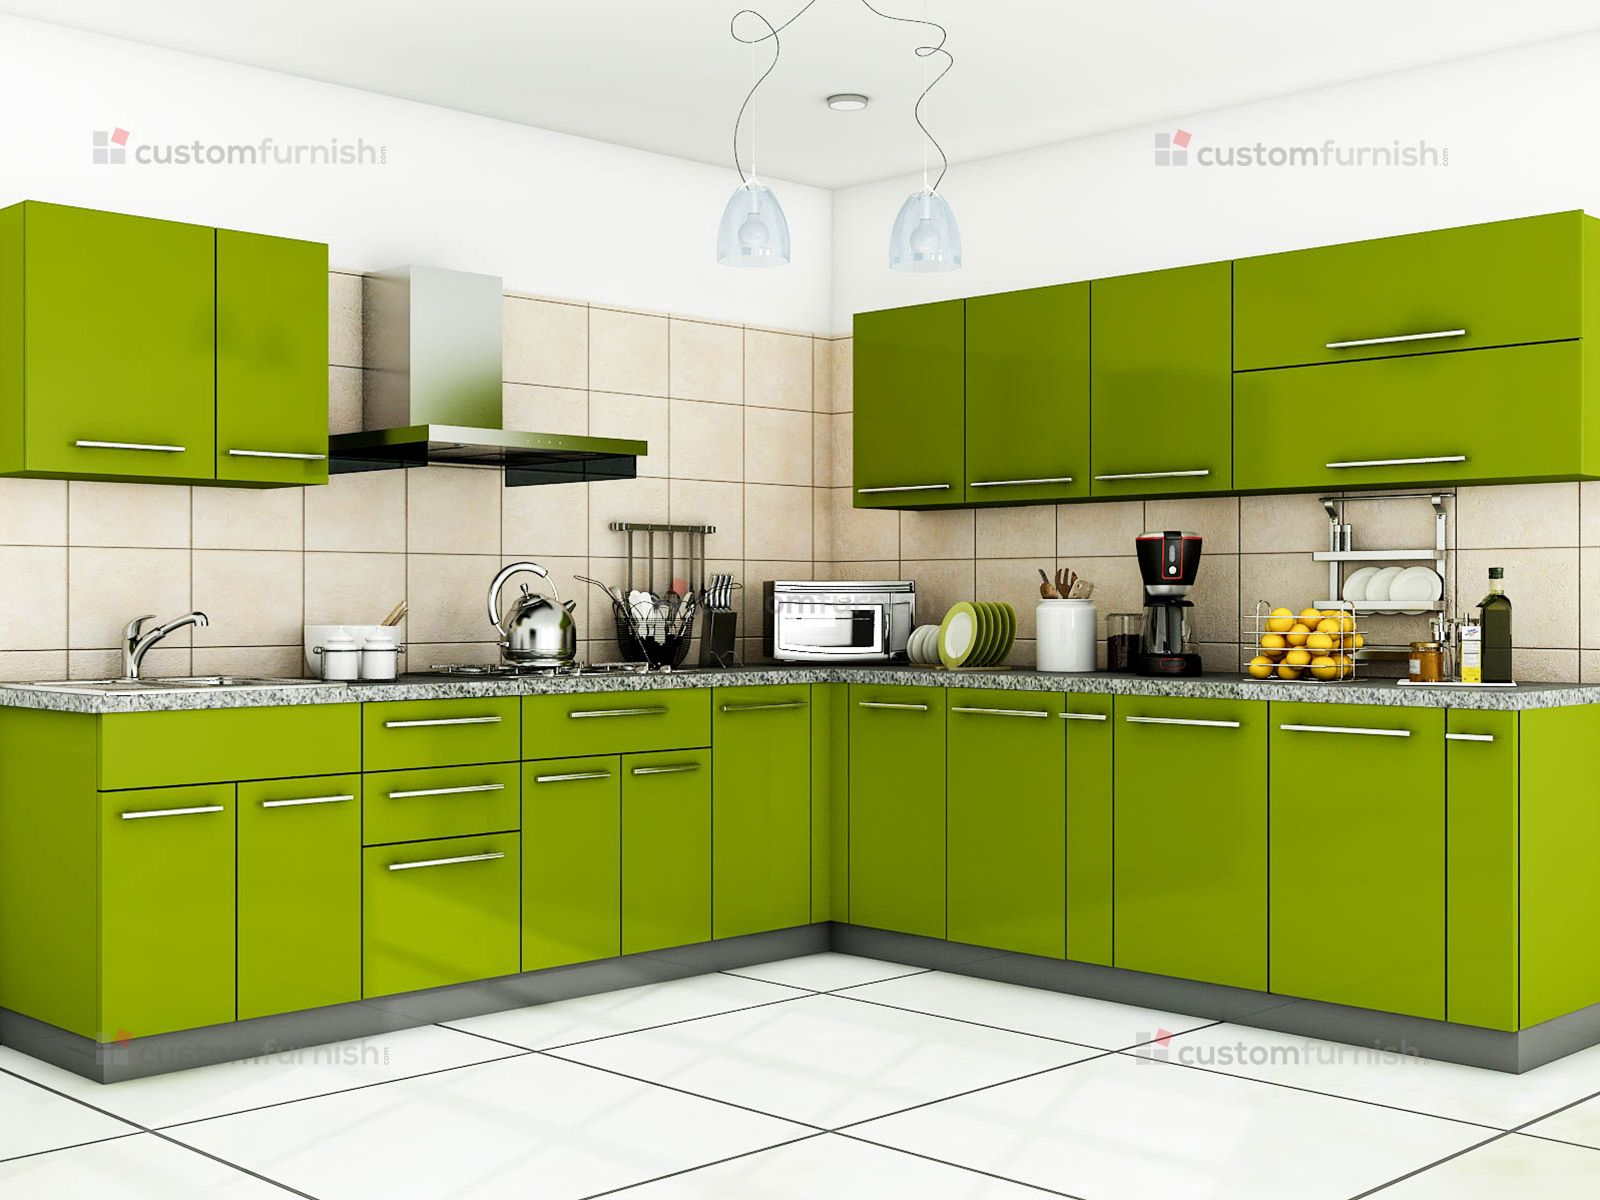 5 Reasons Why Modular Kitchen Designs Are The Latest Trend In Home Decor Kitchen Modular Kitchen Design Kitchen Solutions